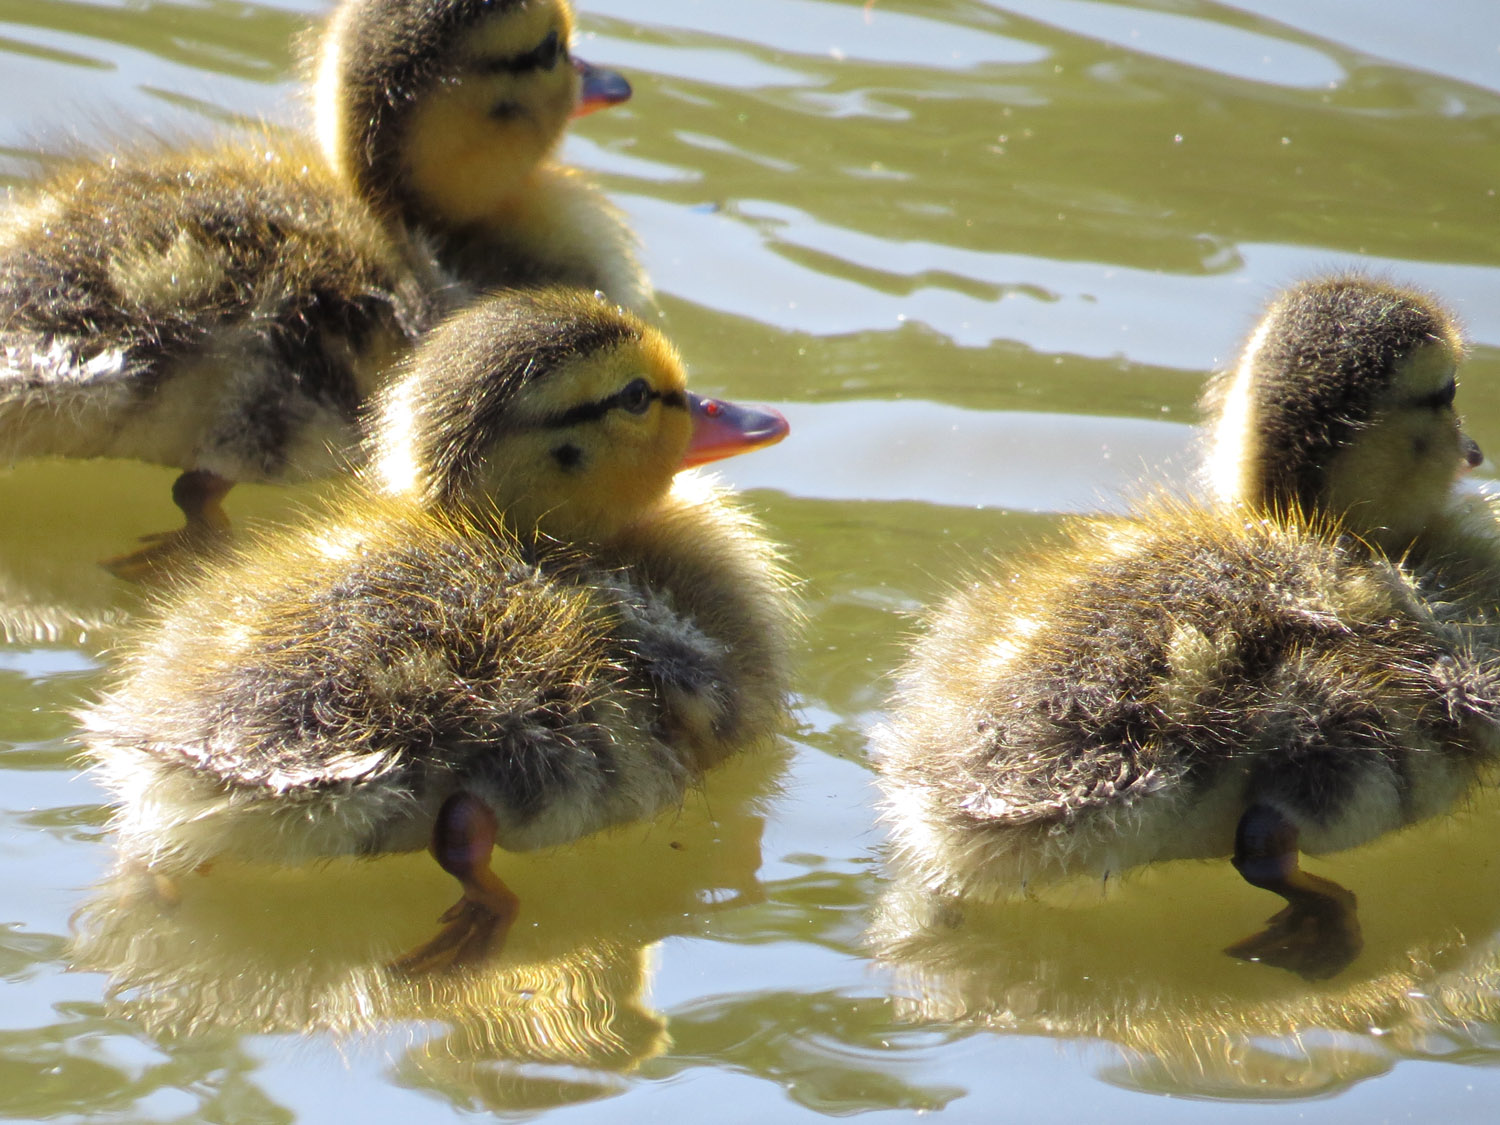 Mallard ducklings at the Pond, Central Park, July 5, 2016.